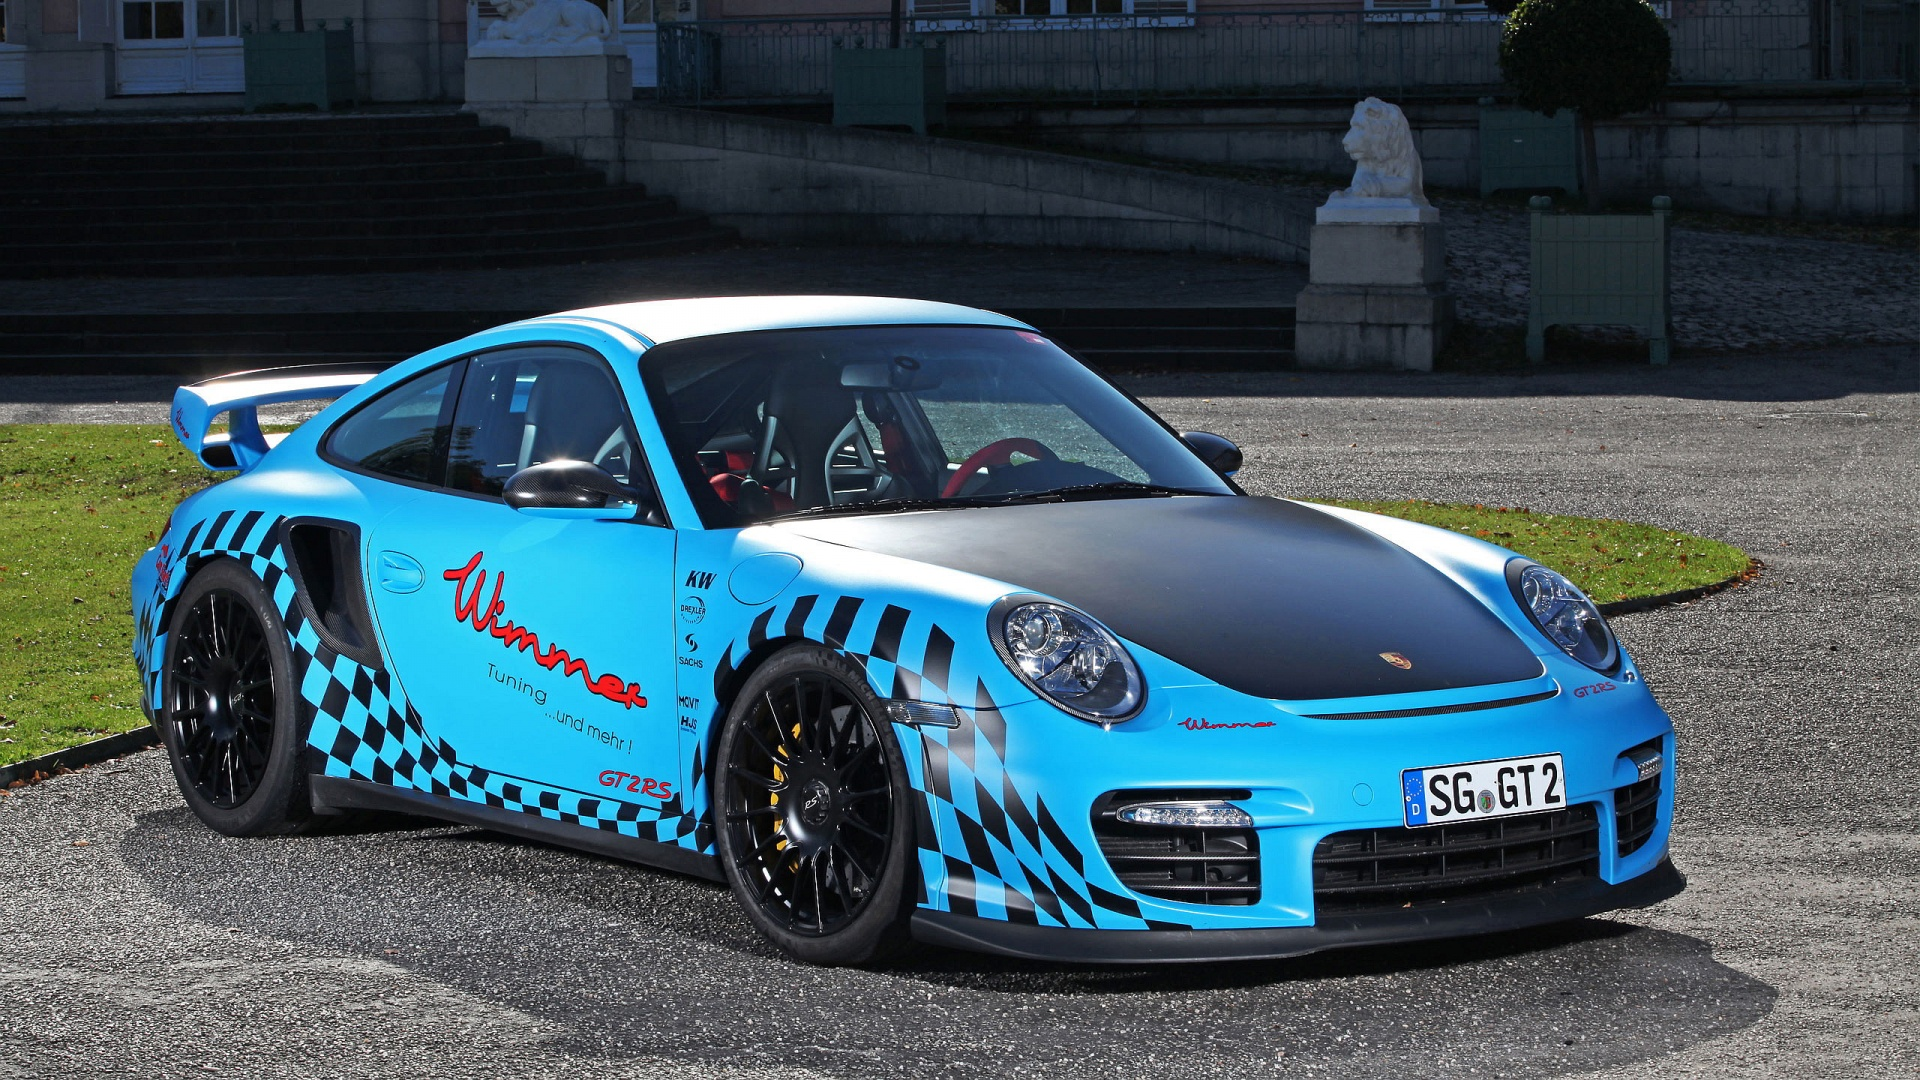 Porsche 911 Modified Car Wallpaper